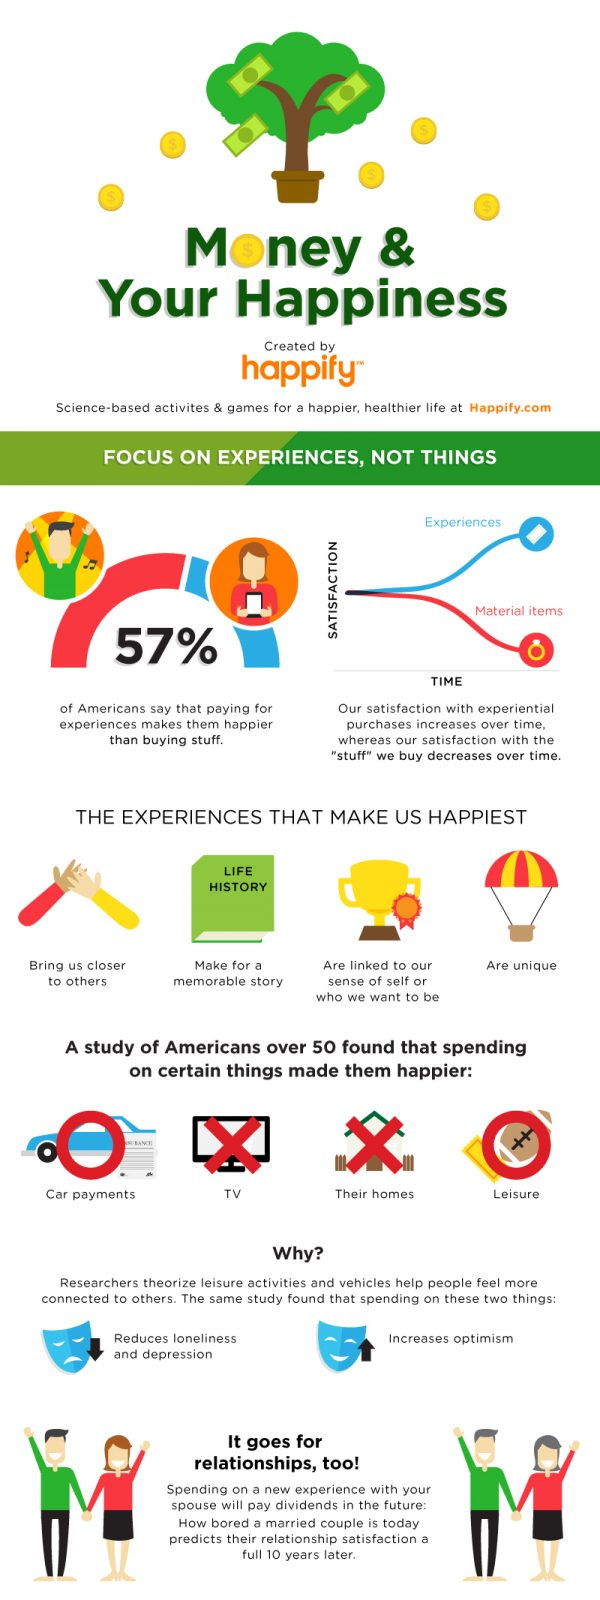 Happiness_and_money_Happify1